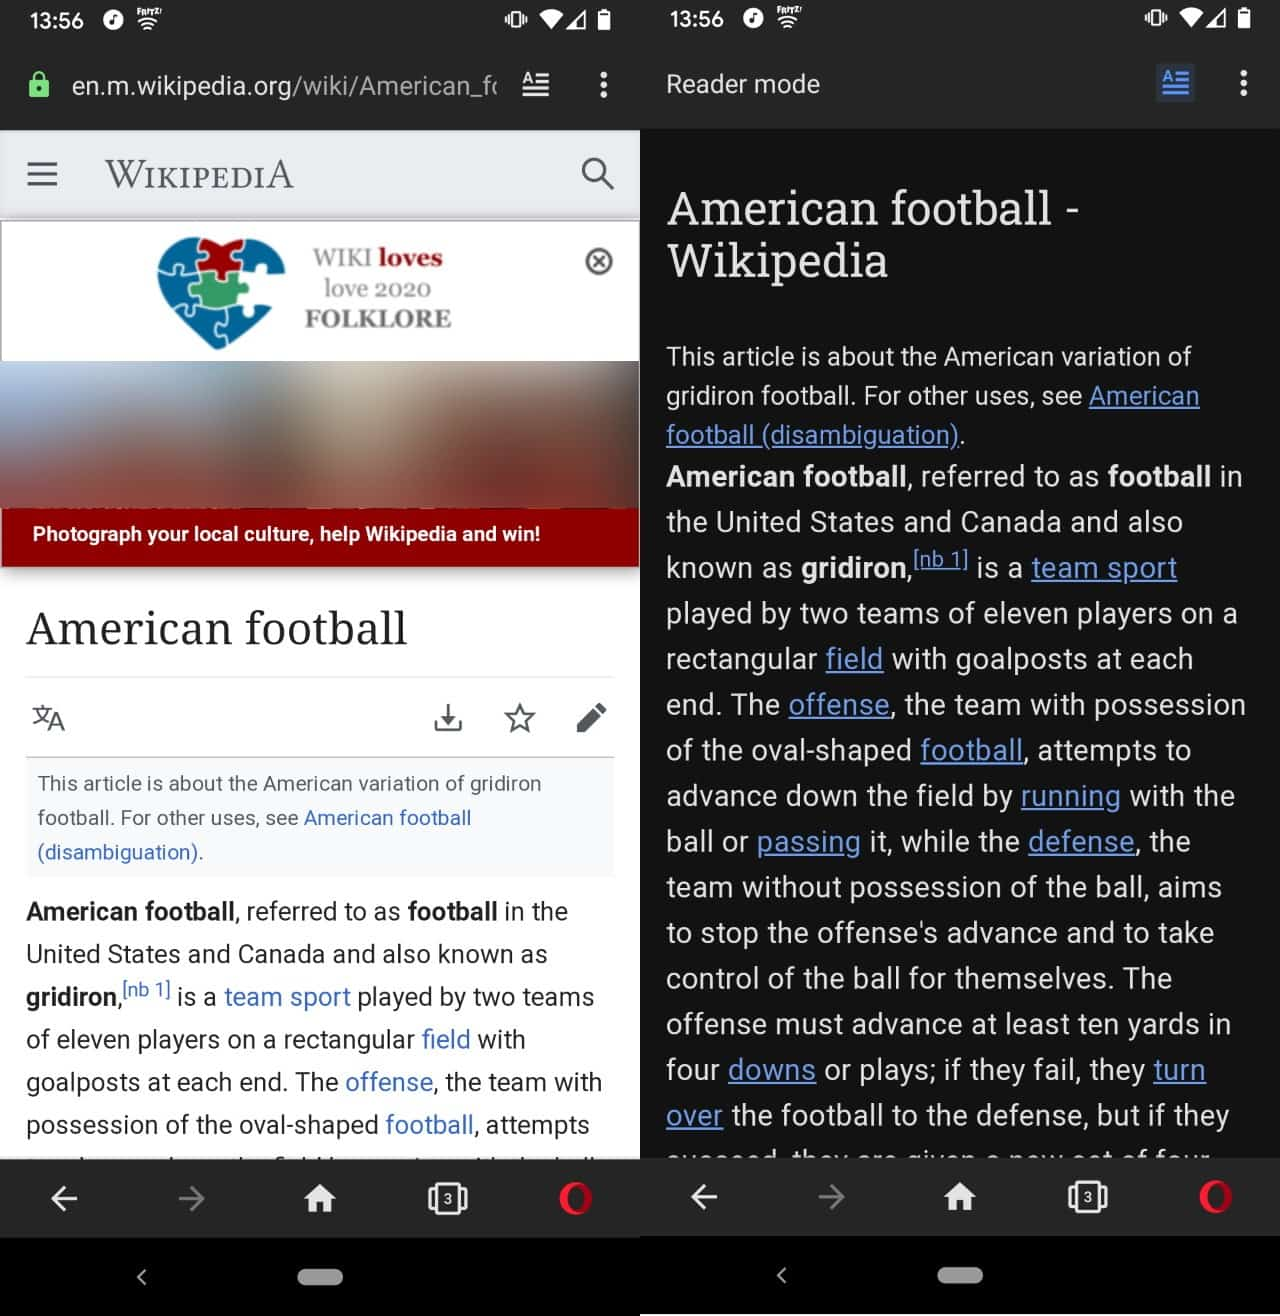 opera 56 android reader mode